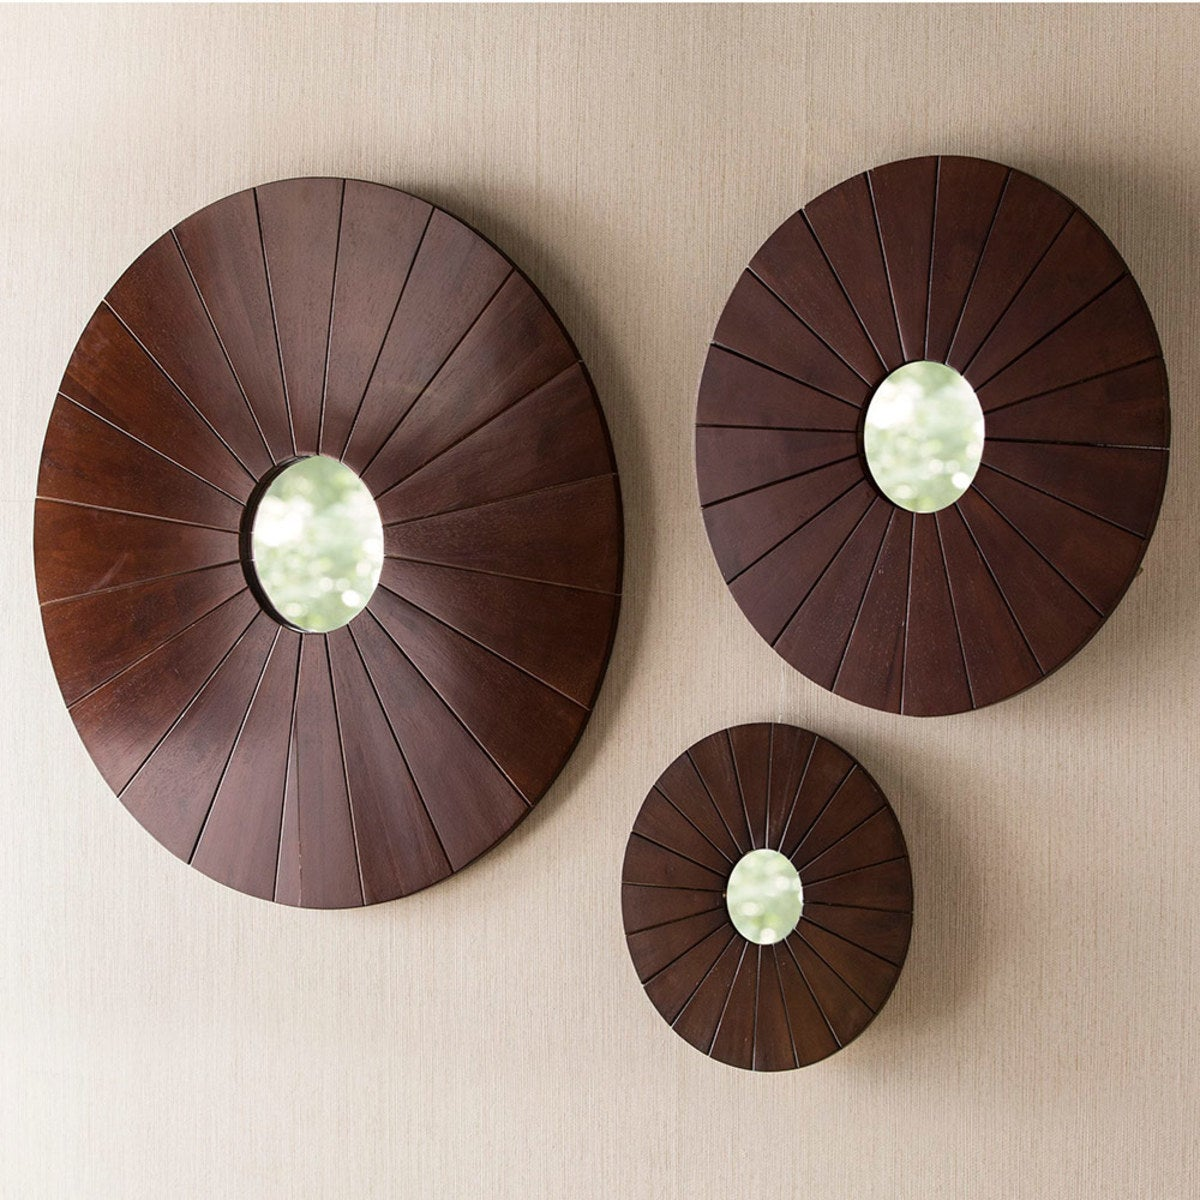 Birchwood Burst Mirrors